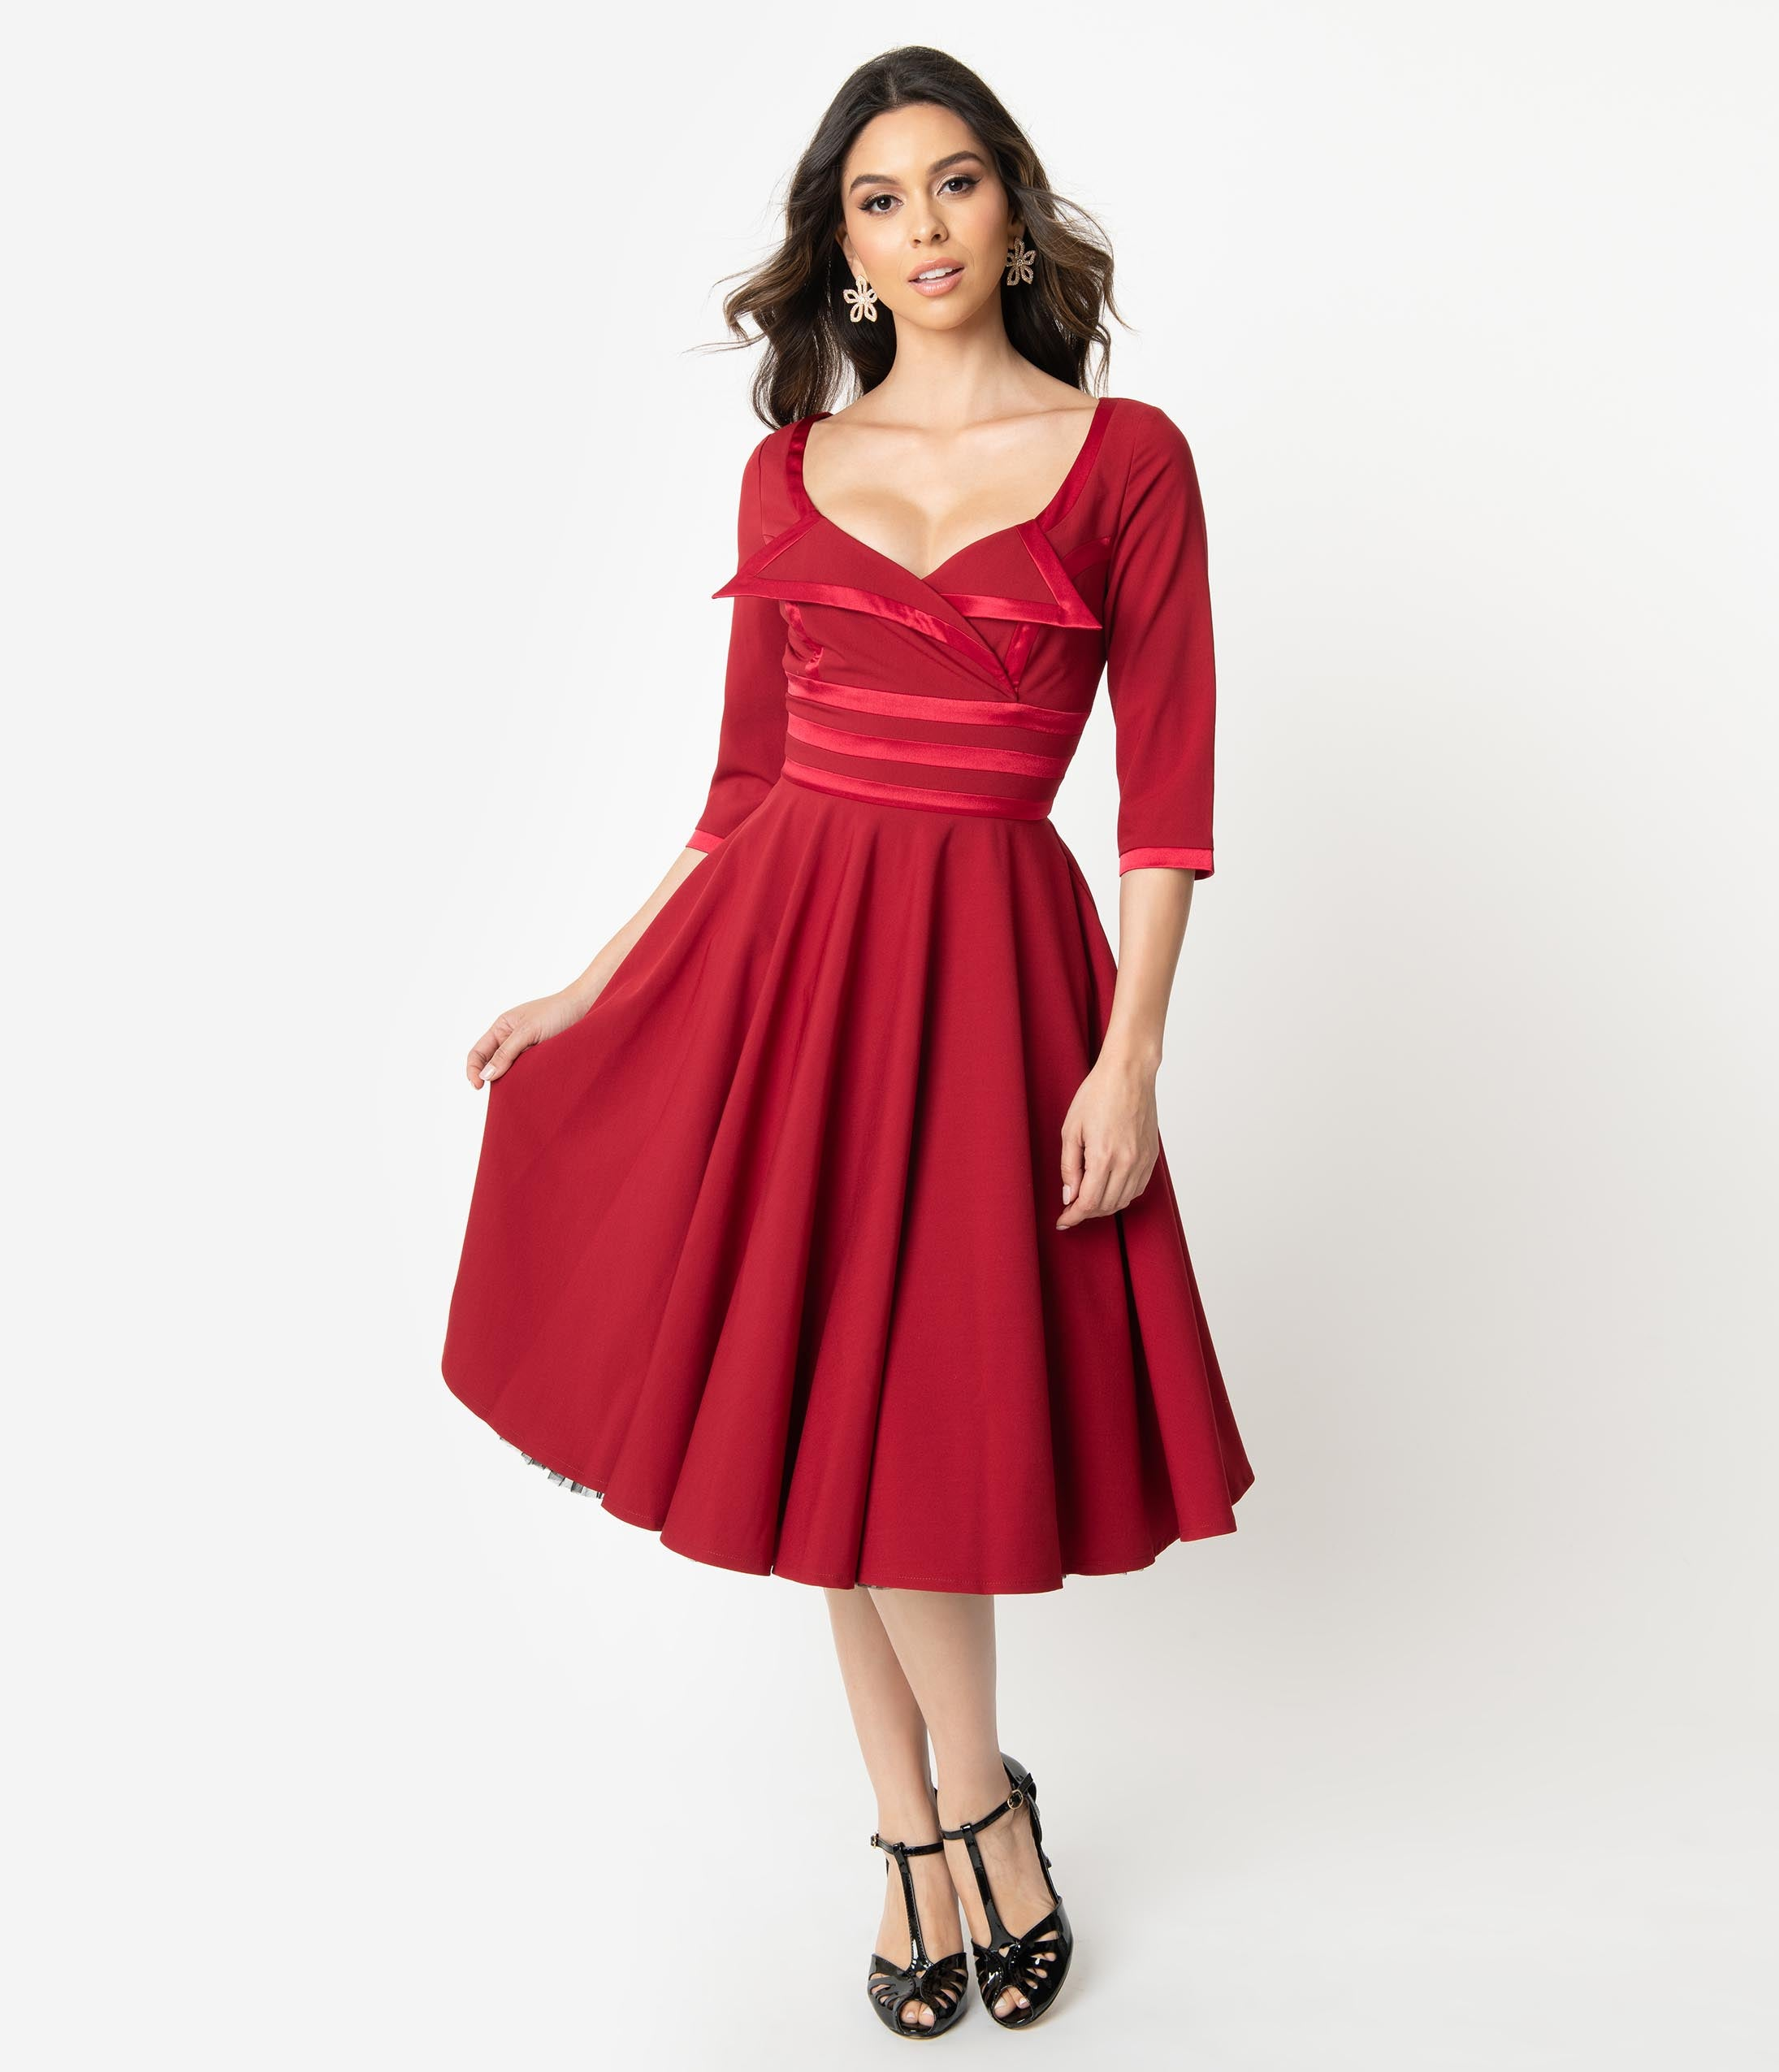 Vintage Cocktail Dresses, Party Dresses Glamour Bunny 1950S Bordeaux Red Sleeved Aline Swing Dress $132.00 AT vintagedancer.com